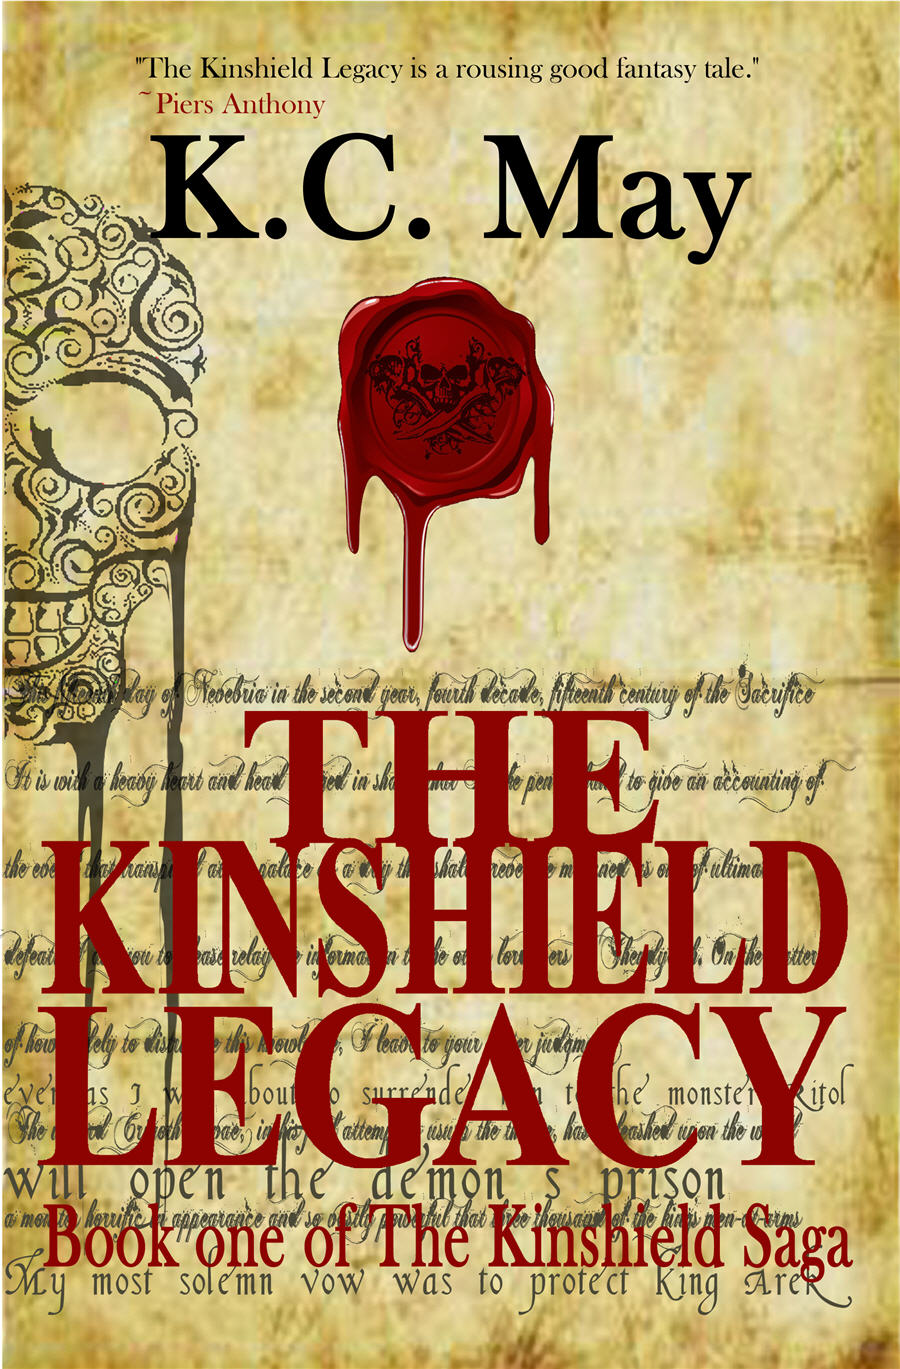 GoodReads entry for The Kinshield Legacy